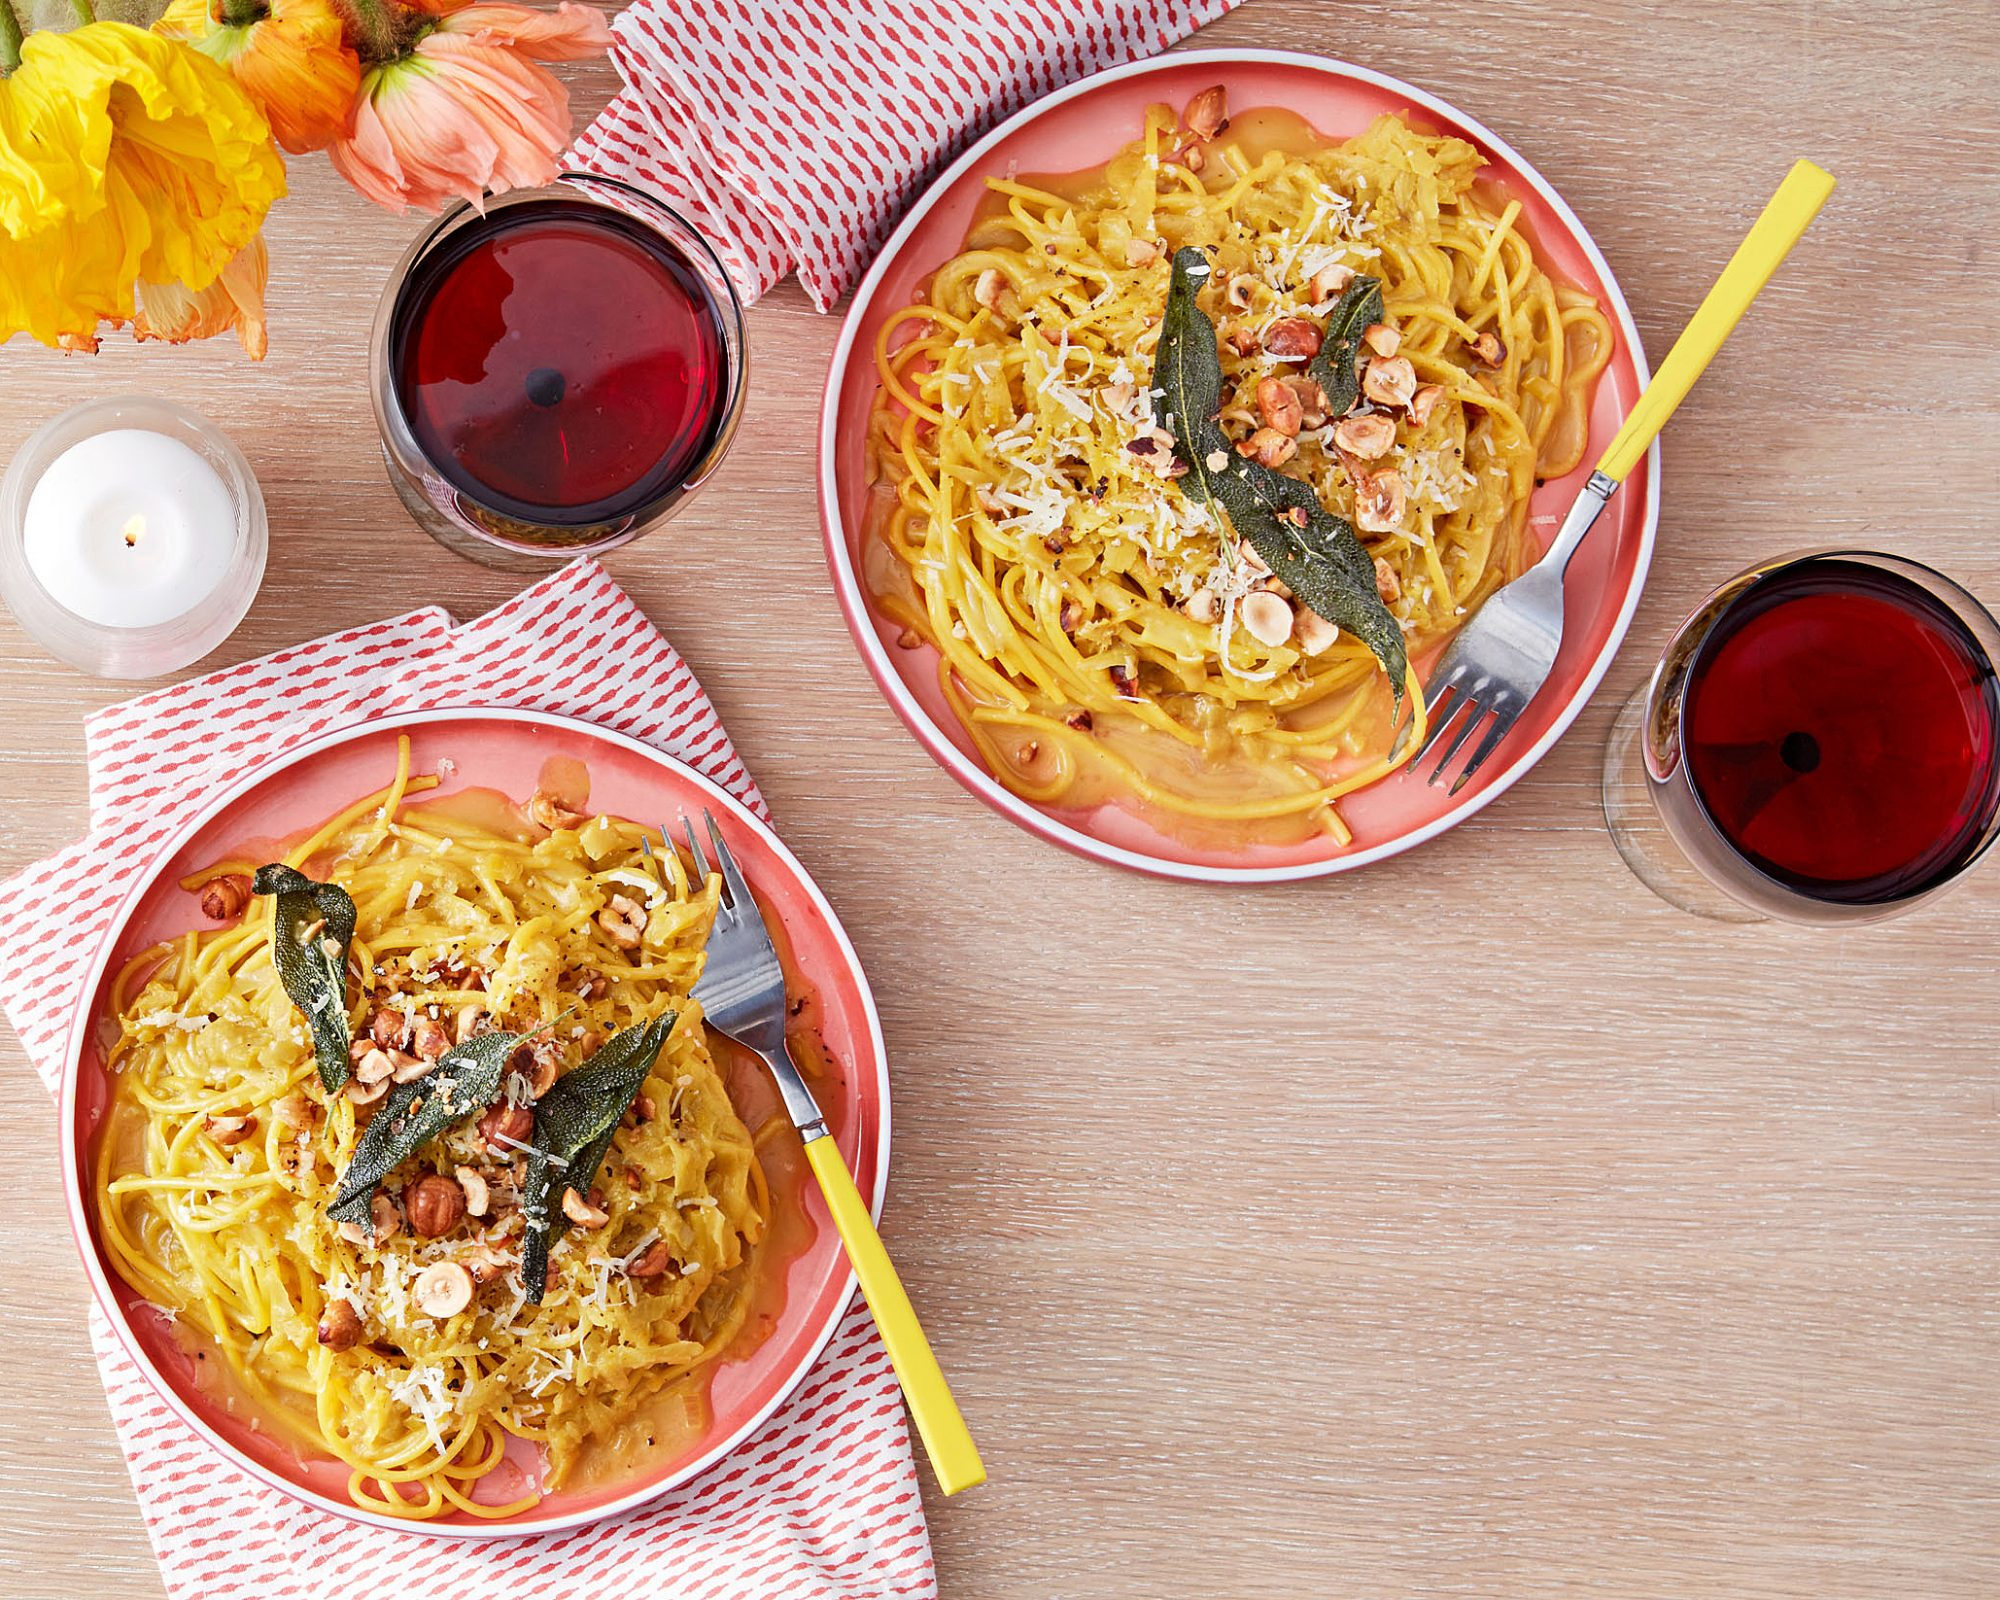 Drunken Tuscan Spaghetti with Golden Beets, Brown Butter & Hazelnuts